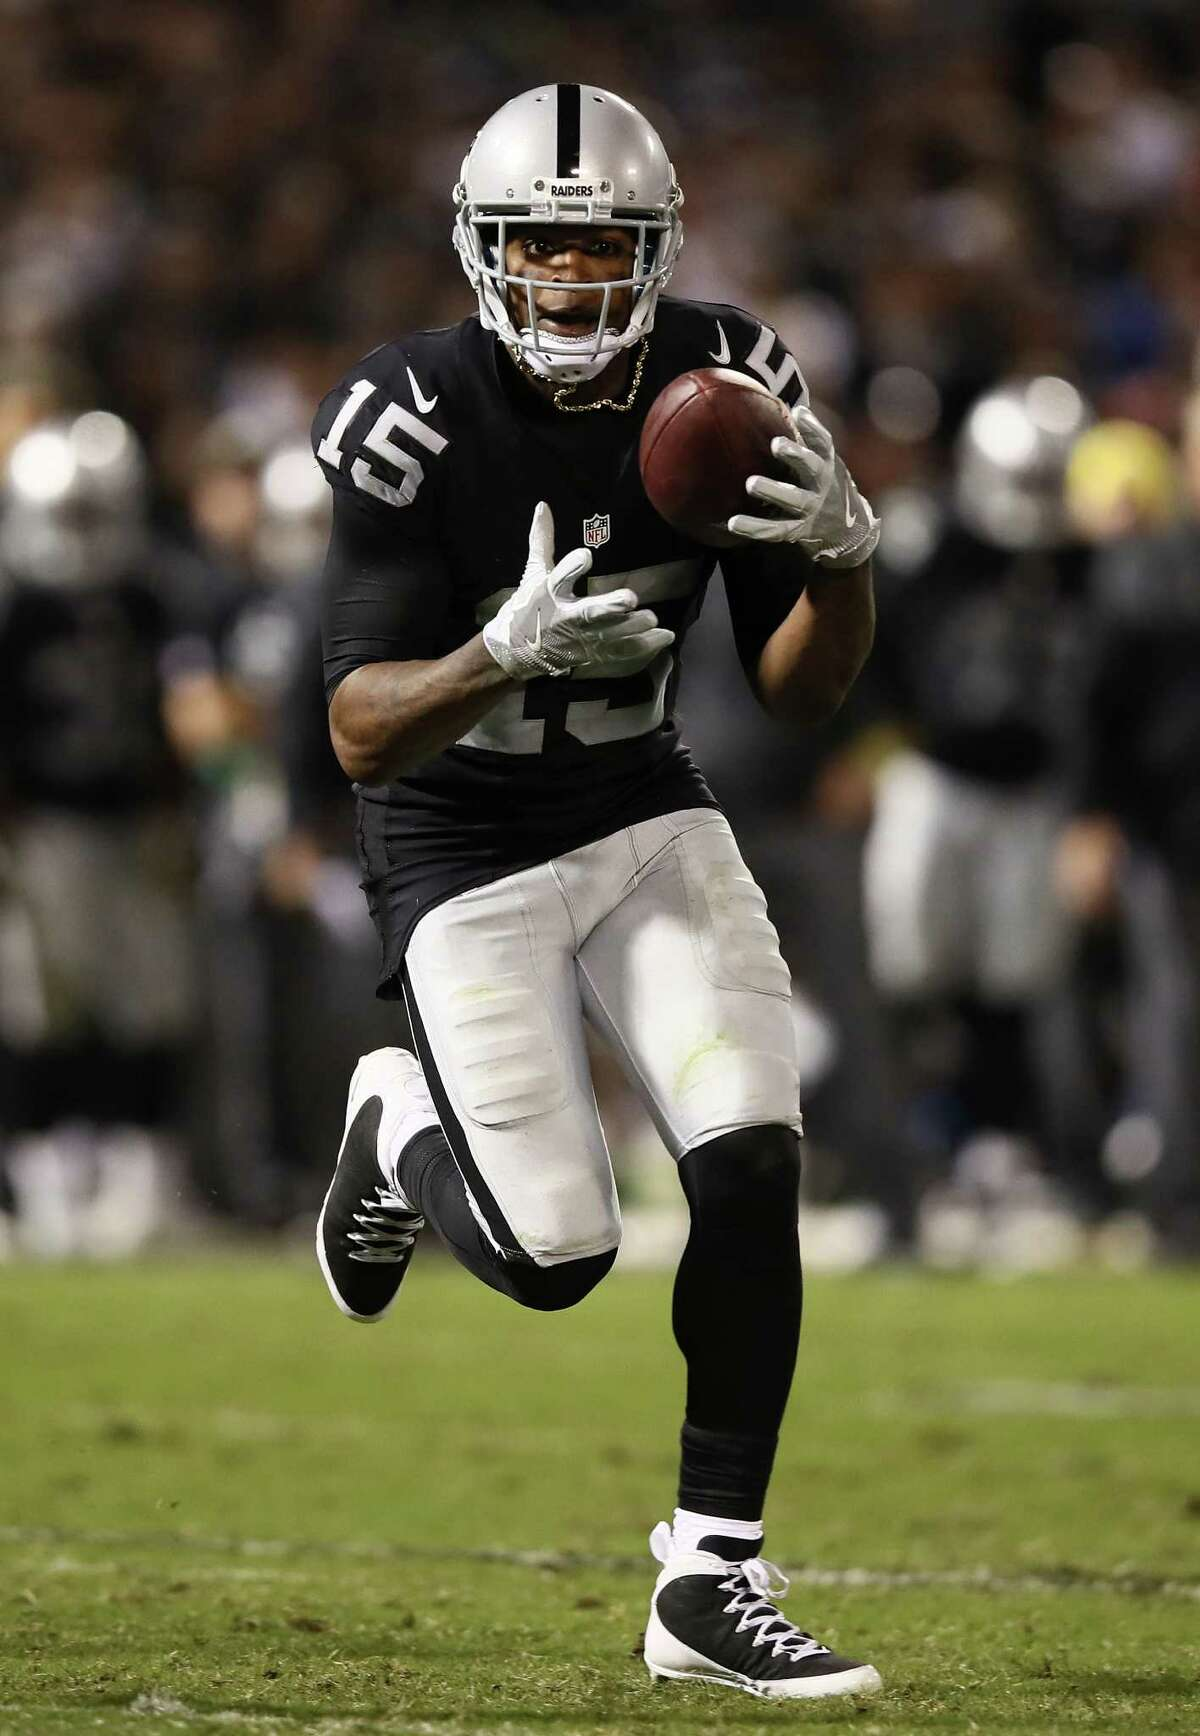 Oakland's Amari Cooper, left, and Michael Crabtree have combined for 107 receptions for 1,439 yards and eight touchdowns this season.